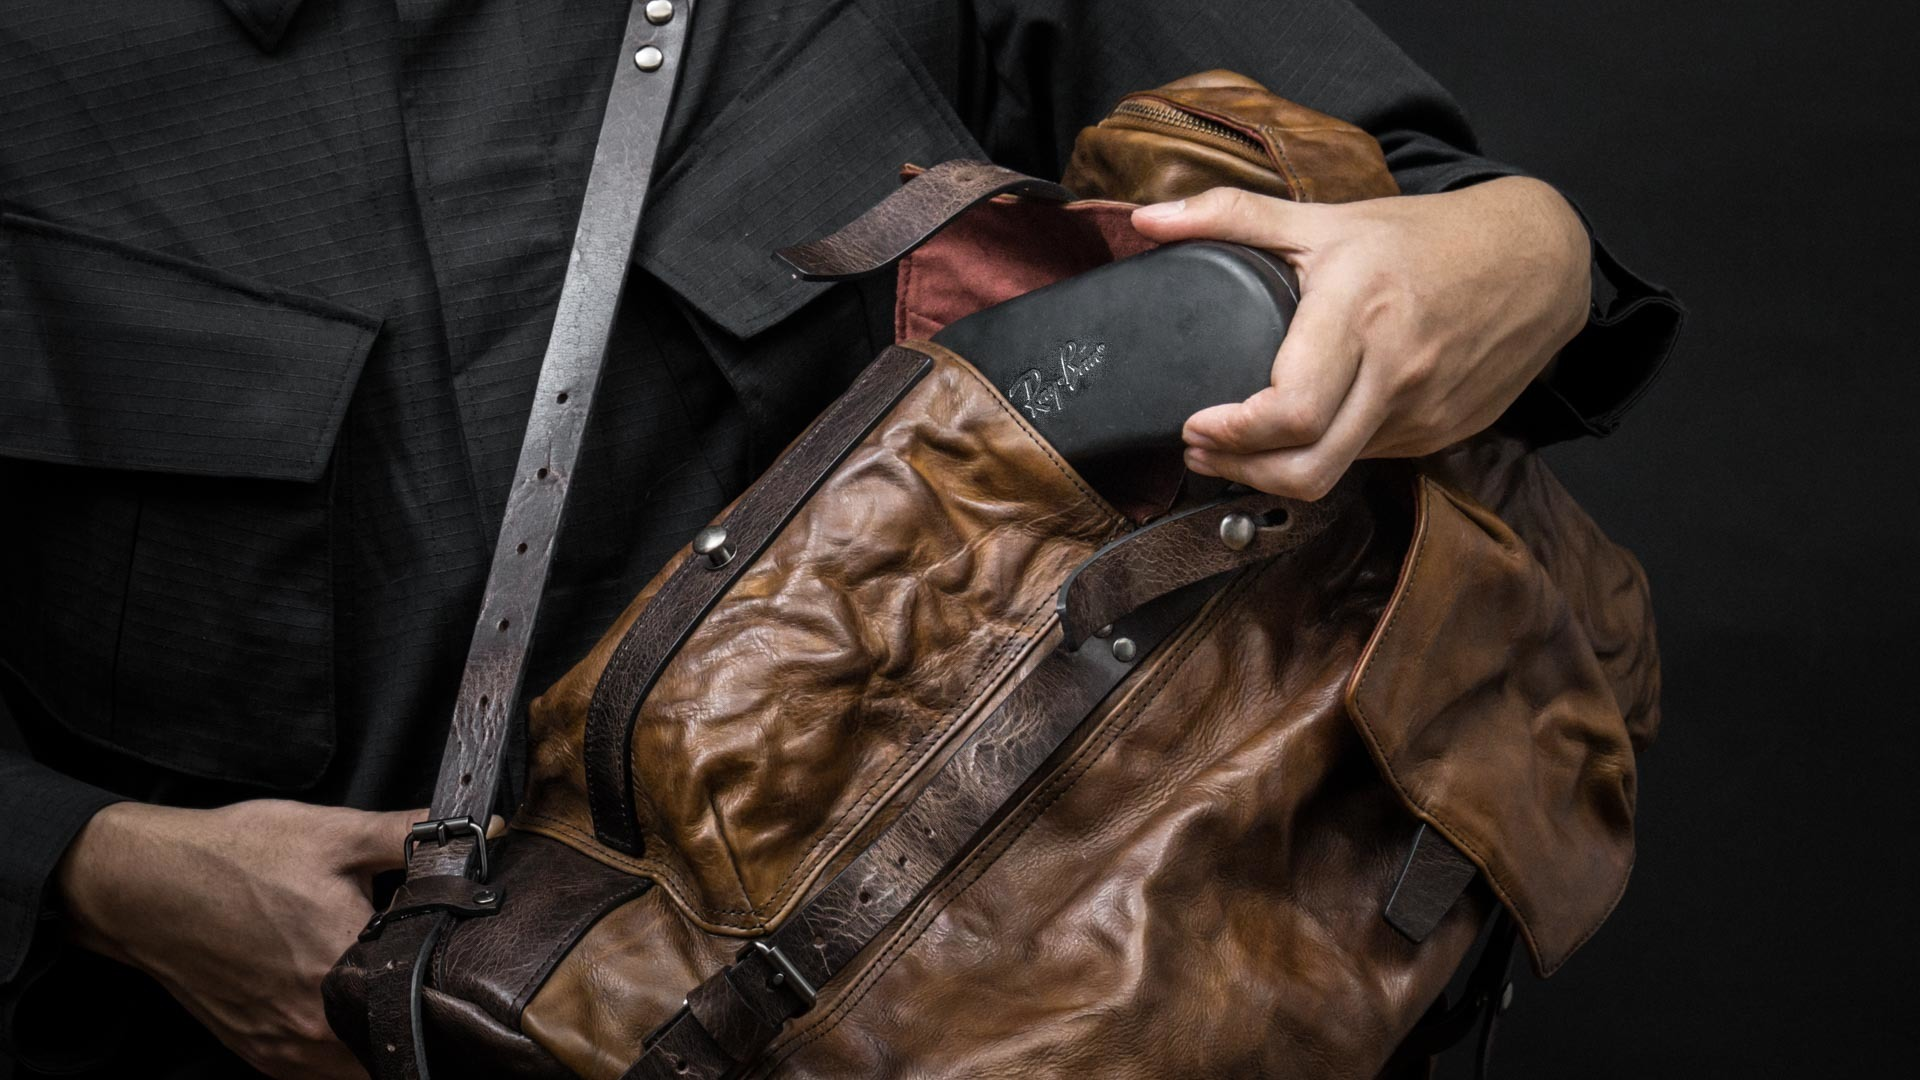 Access sunglasses case in side pocket.